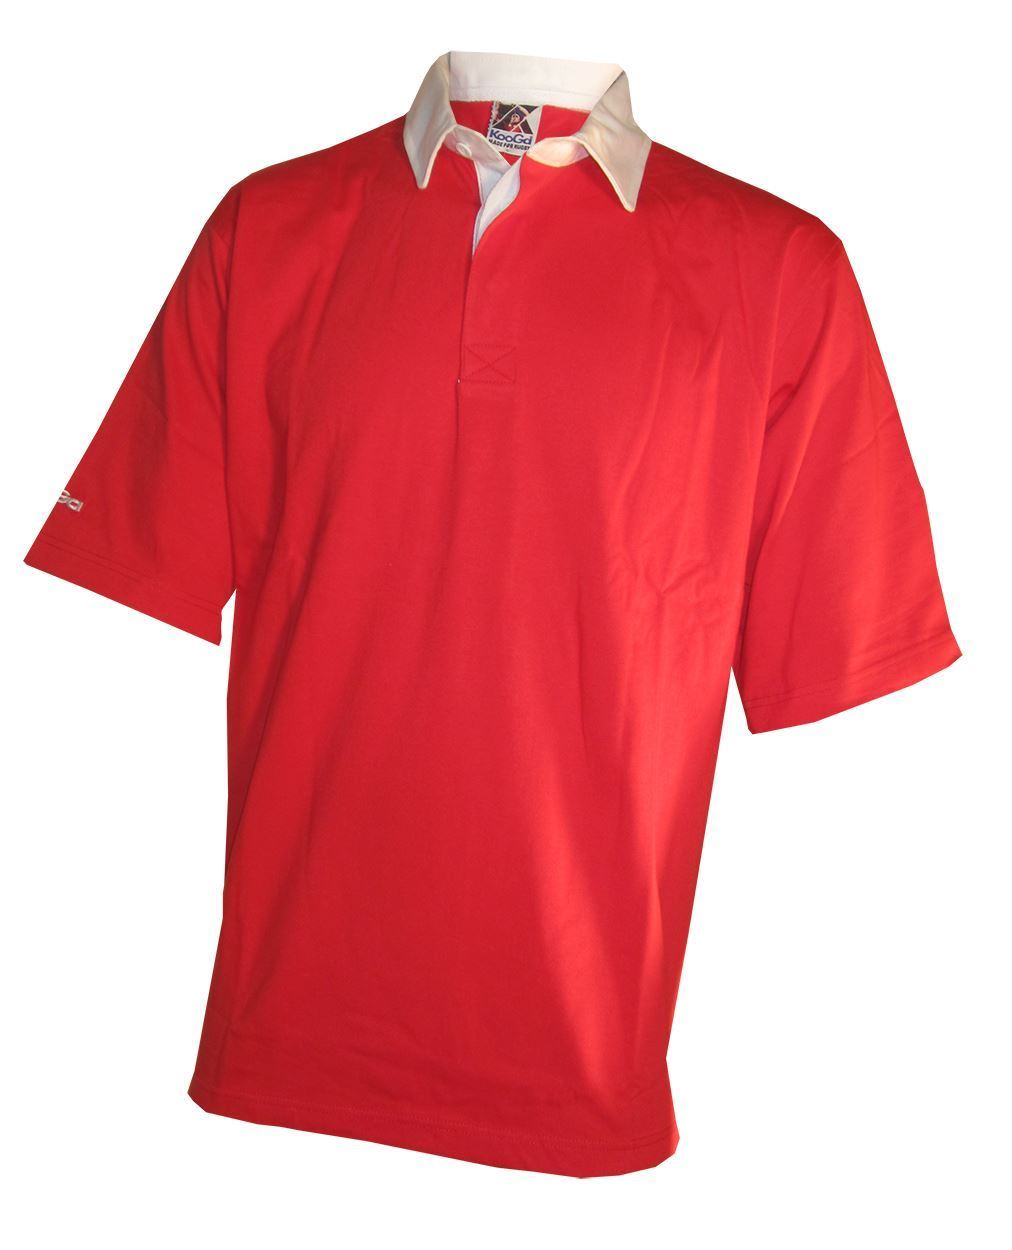 NEW-Kooga-Mens-Polo-Rugby-Shirt-Top-in-Red-or-Green-Size-S-amp-XL thumbnail 7